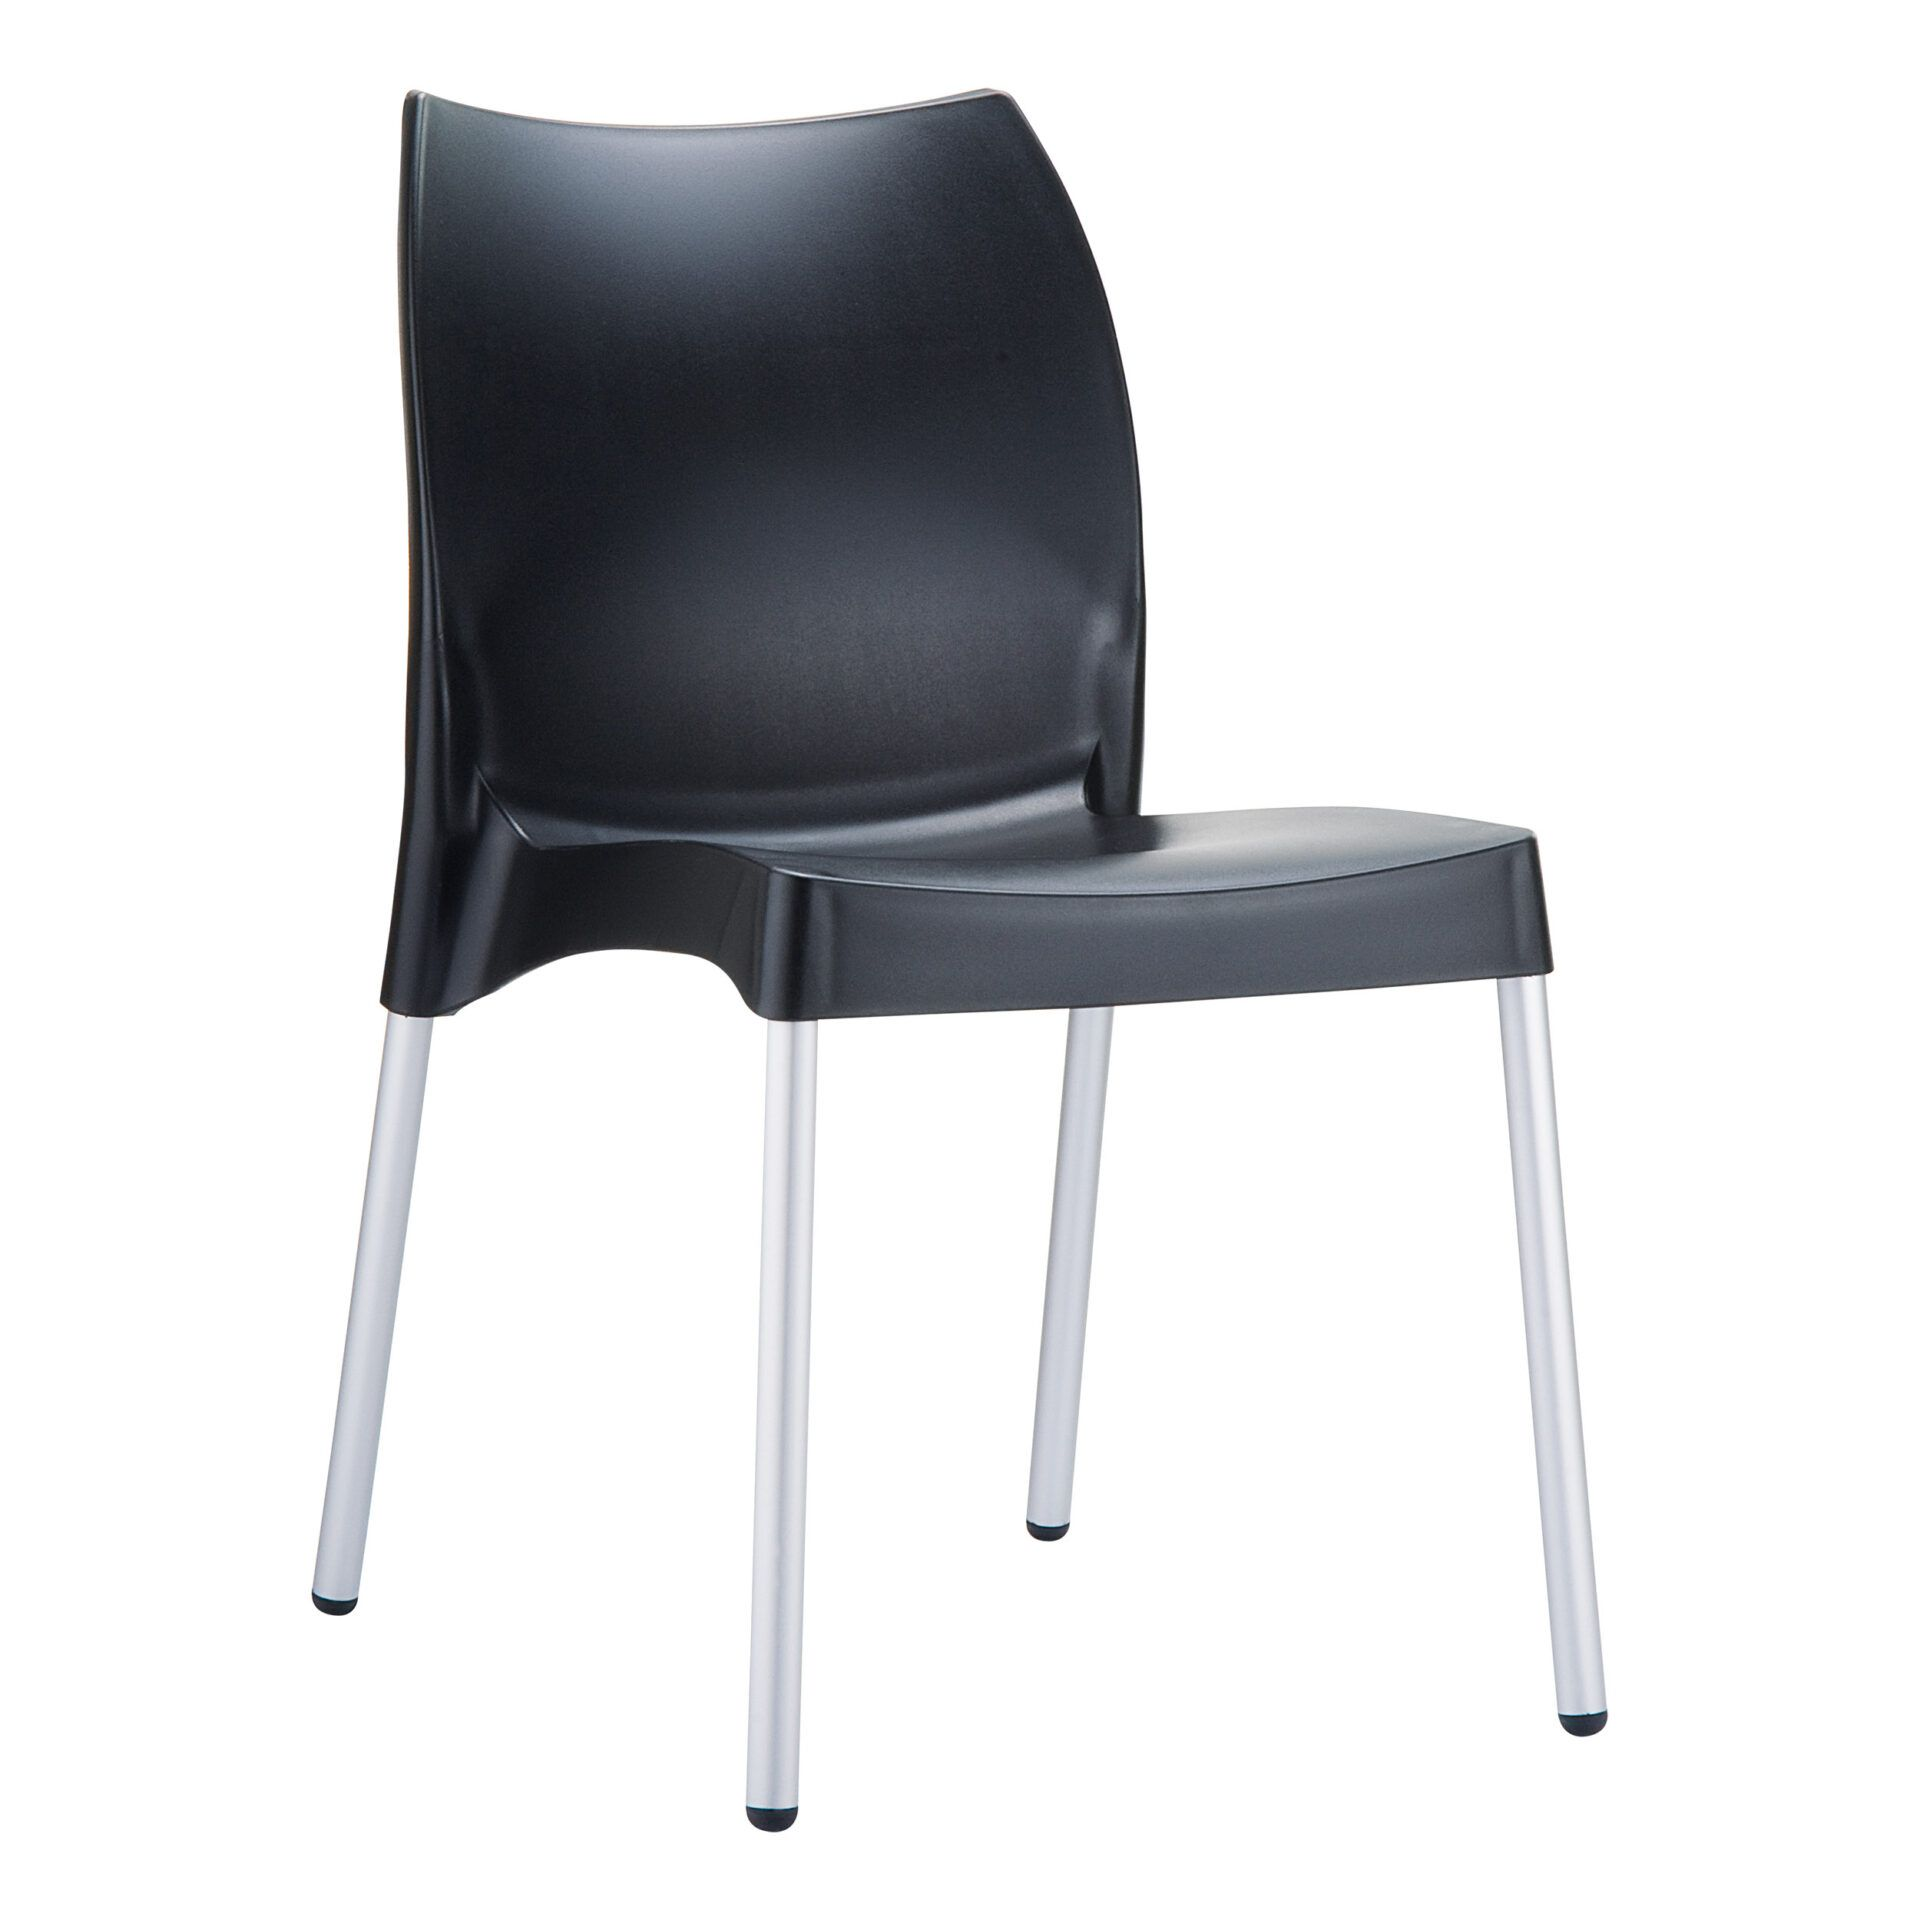 commercial outdoor hospitality seating vita chair black front side